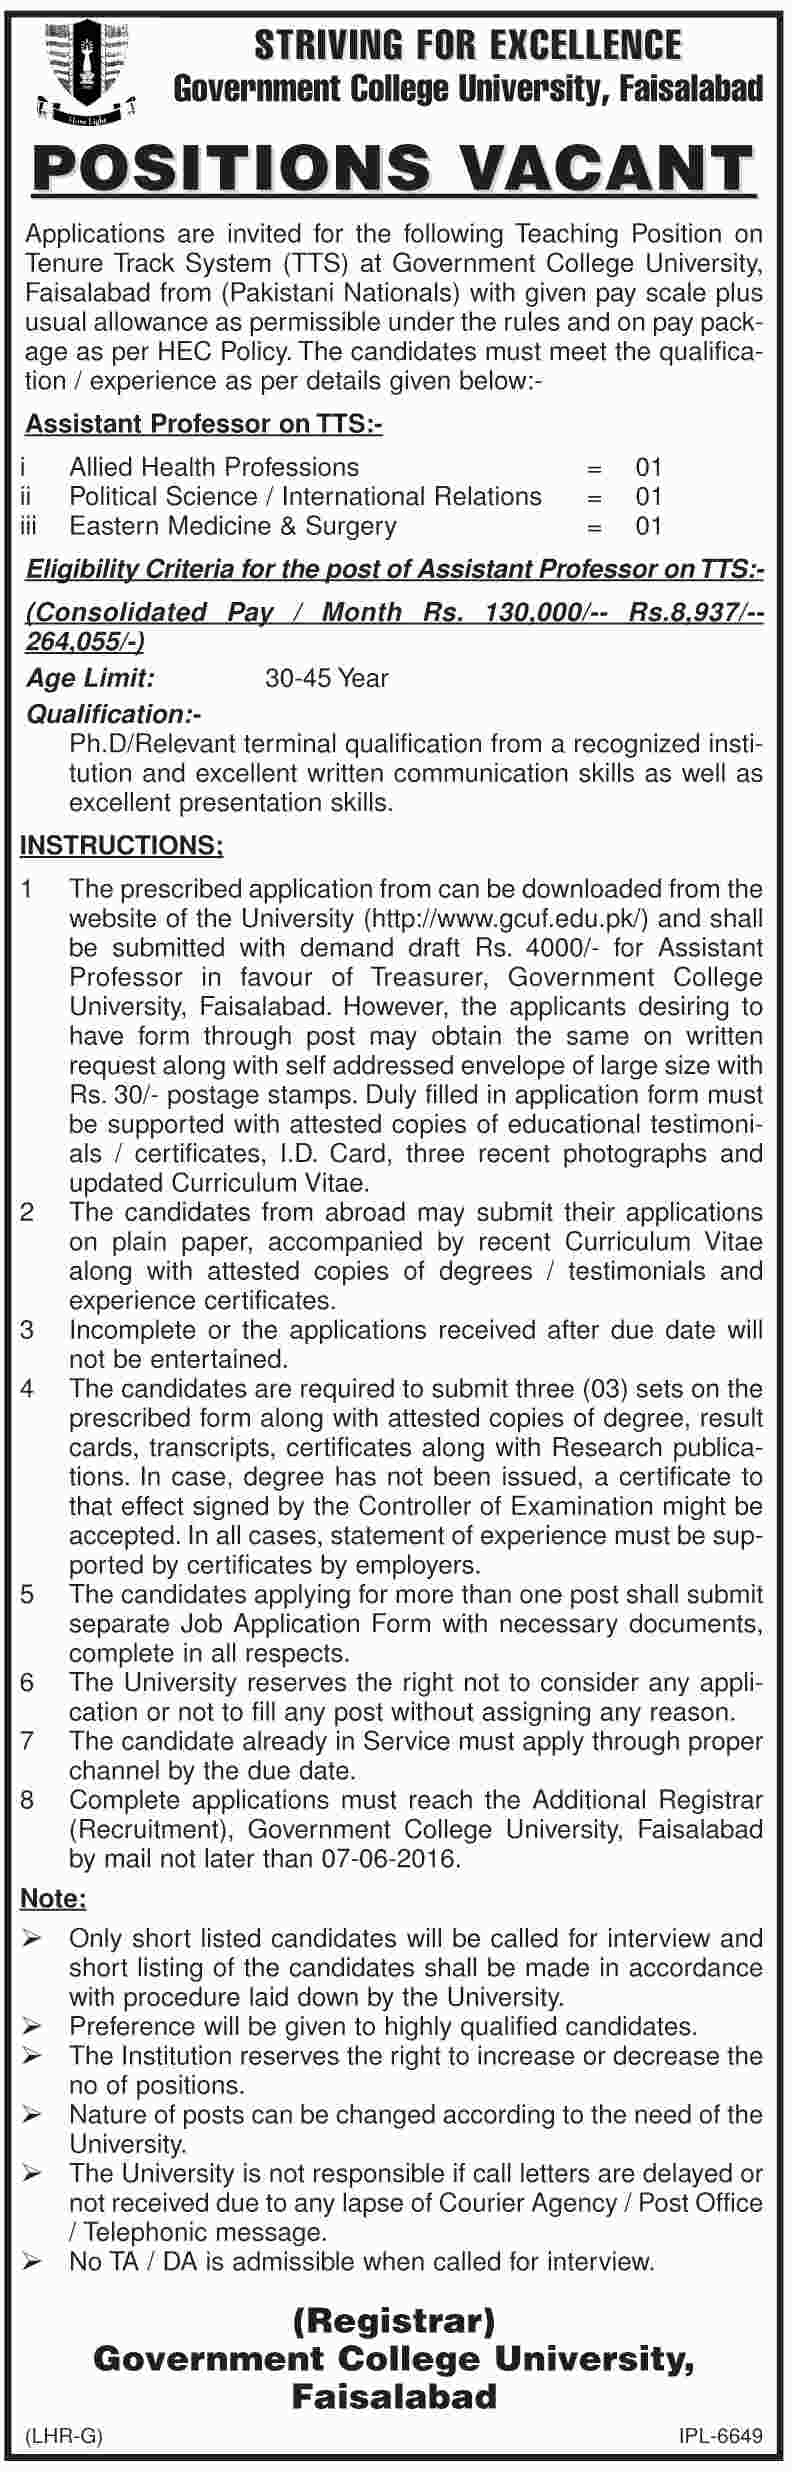 Government College University Faislabad Faculty Required